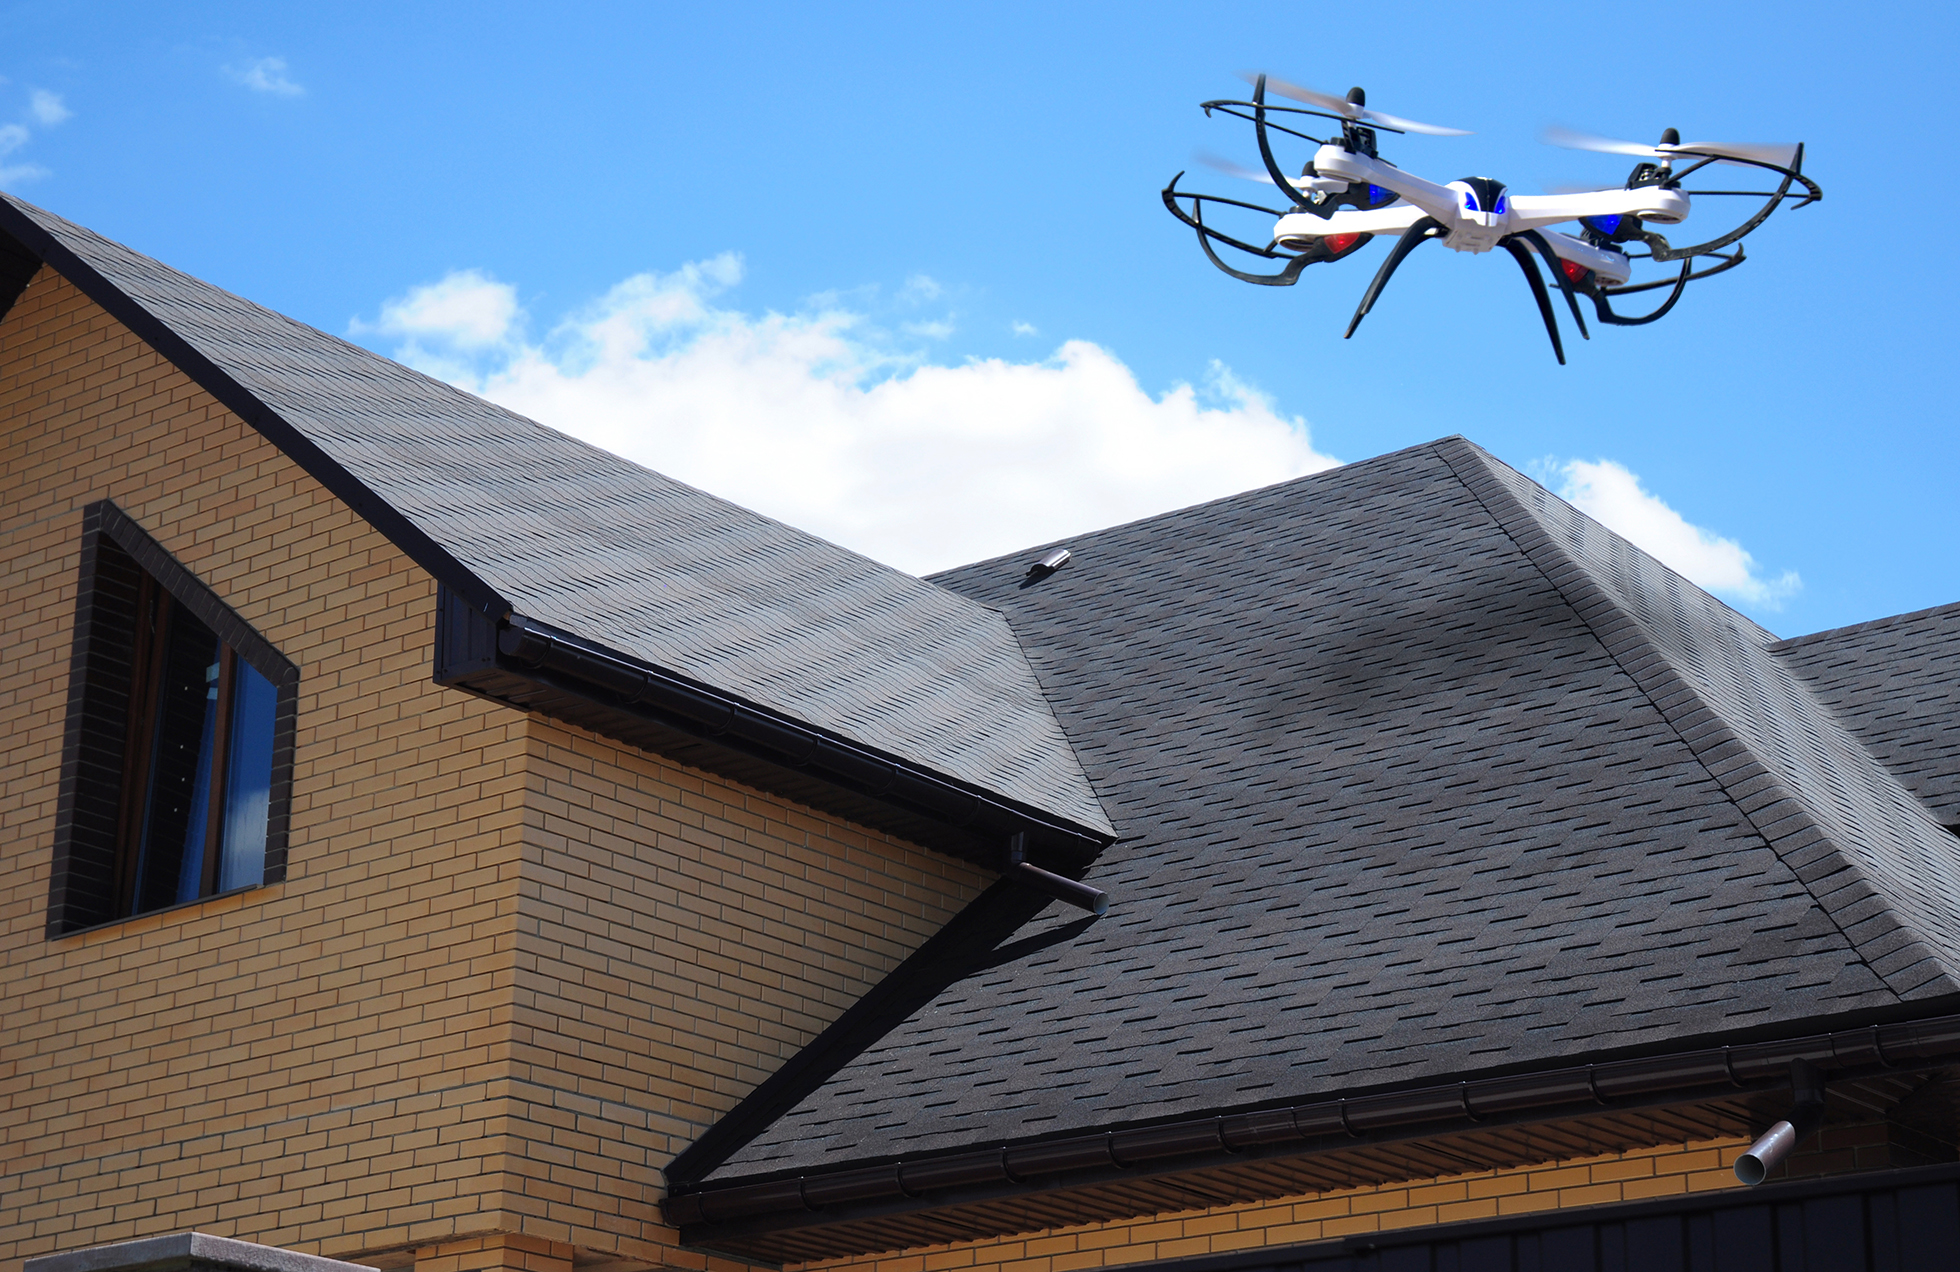 A drone flying above a rooftop